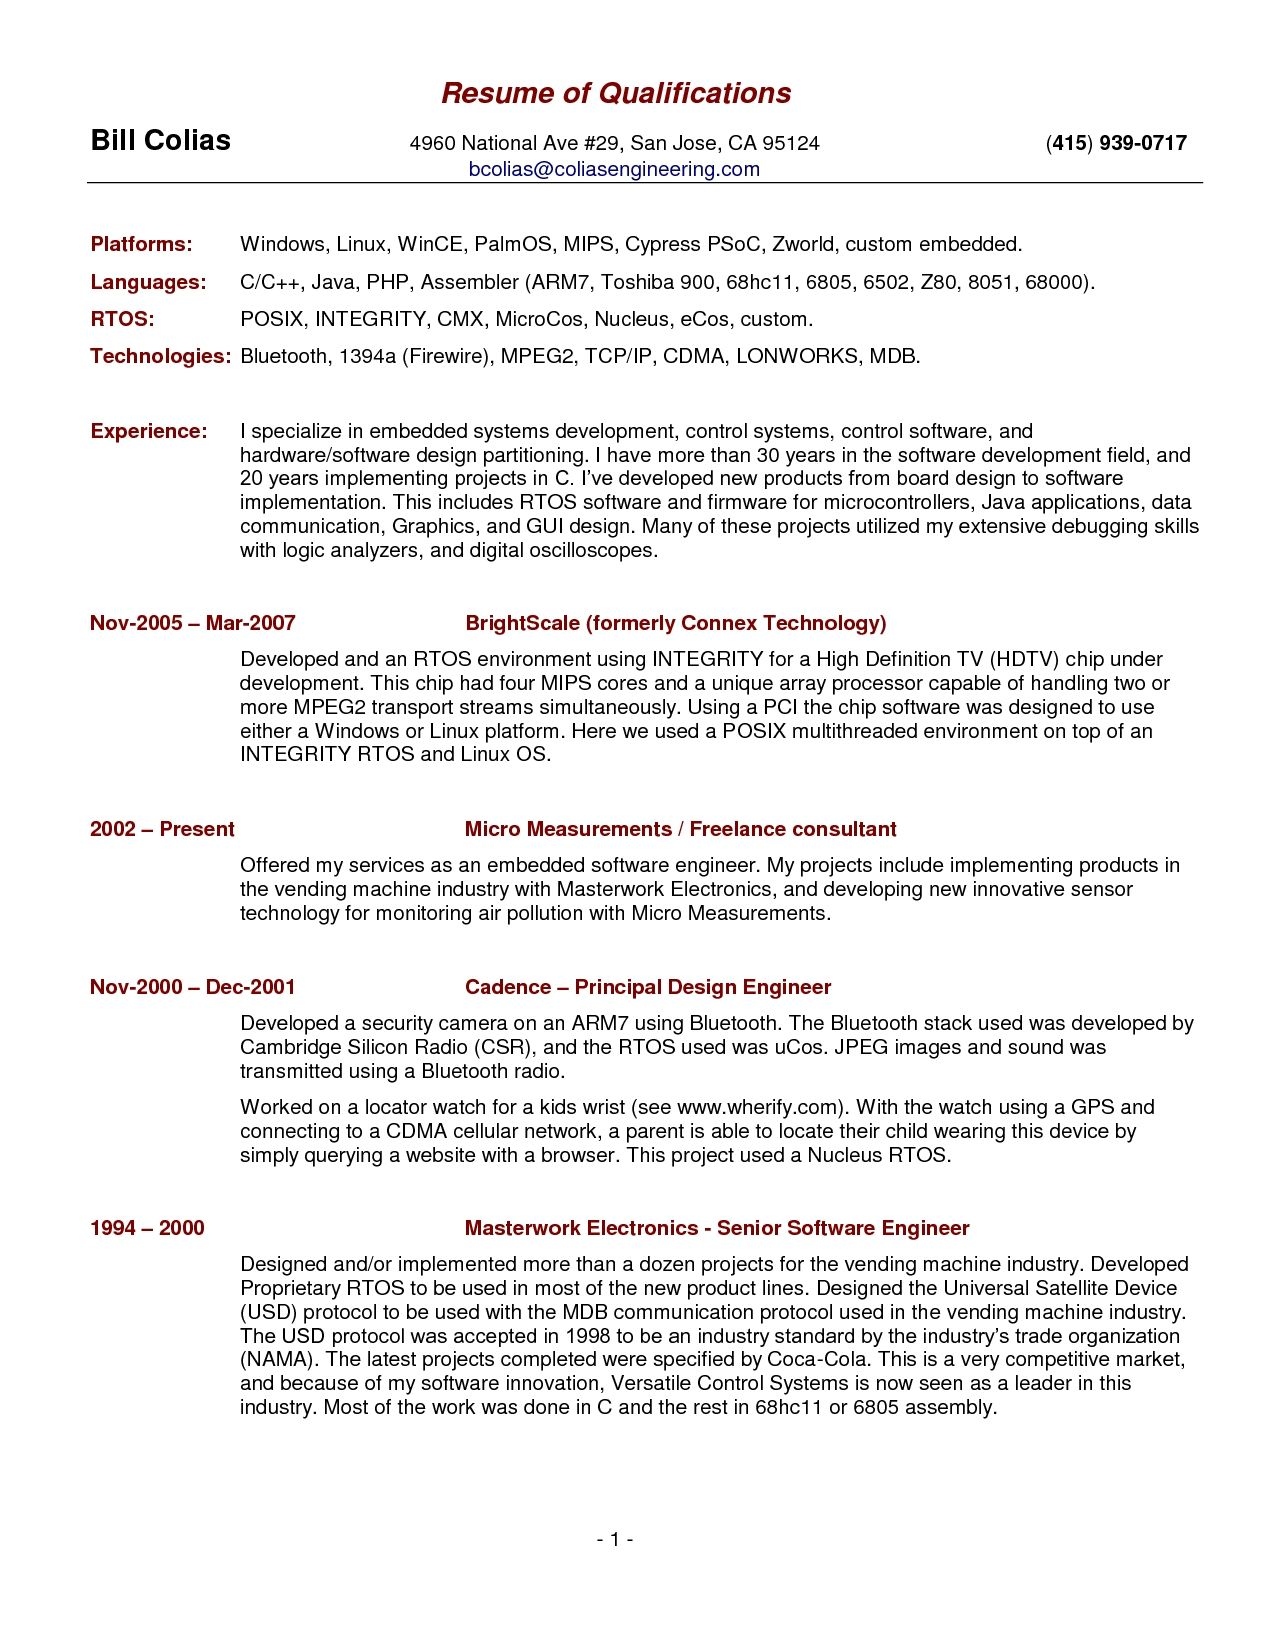 Resume Examples Skills Mesmerizing Qualifications For A Resume Examples 7F8Ea3A2A New Resume Skills Design Ideas